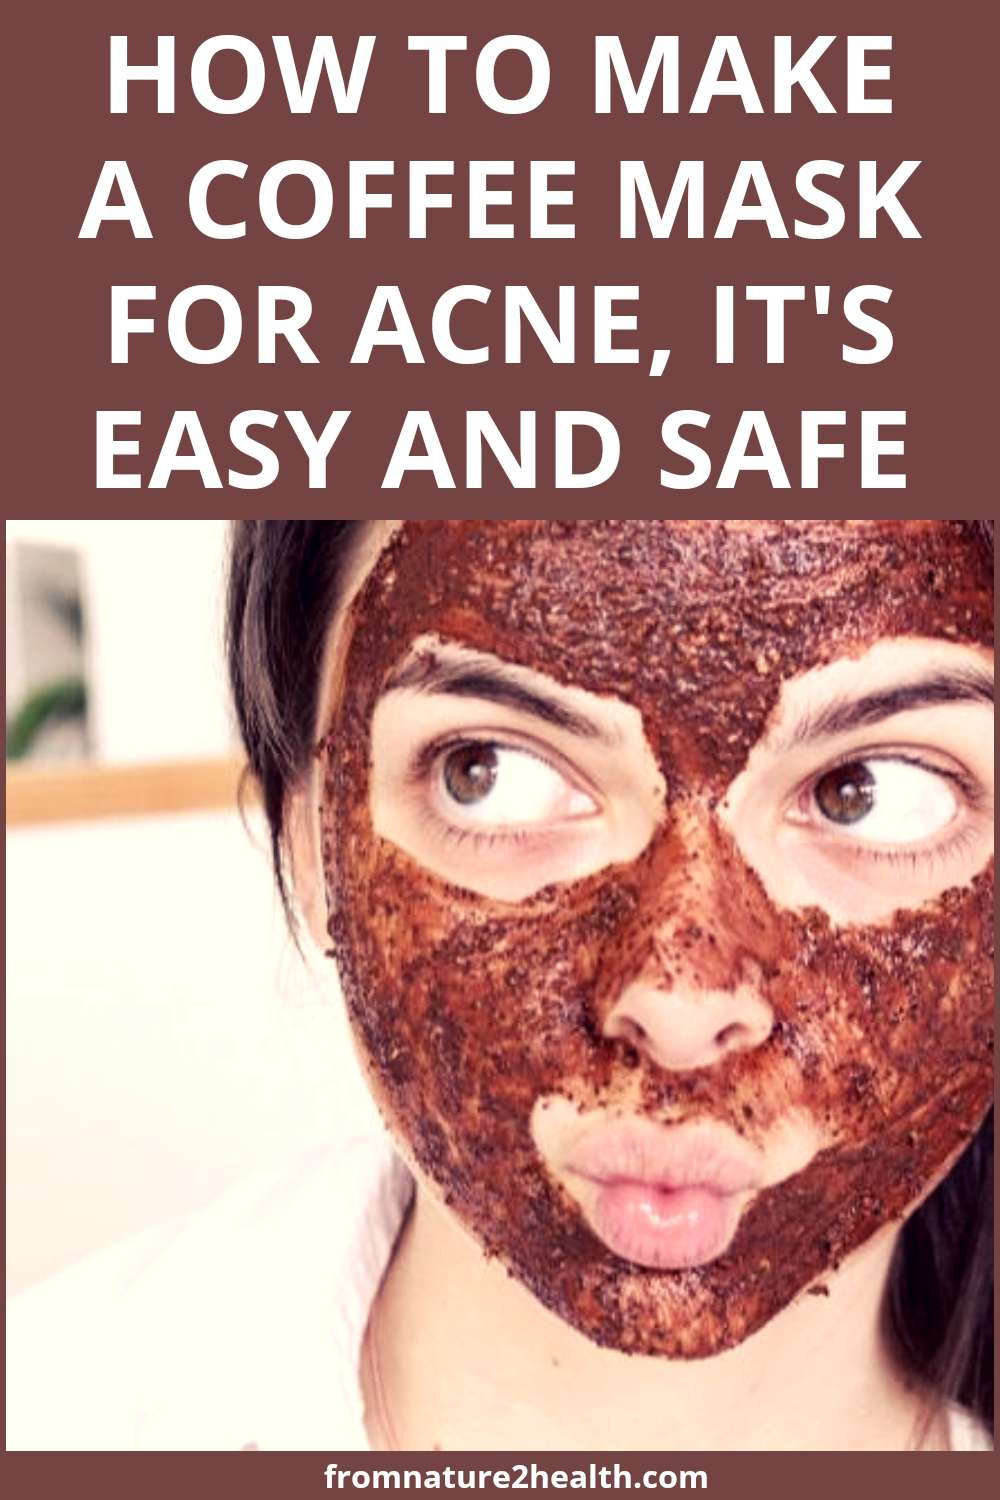 How to Make a Coffee Mask For Acne, It's Easy And Safe